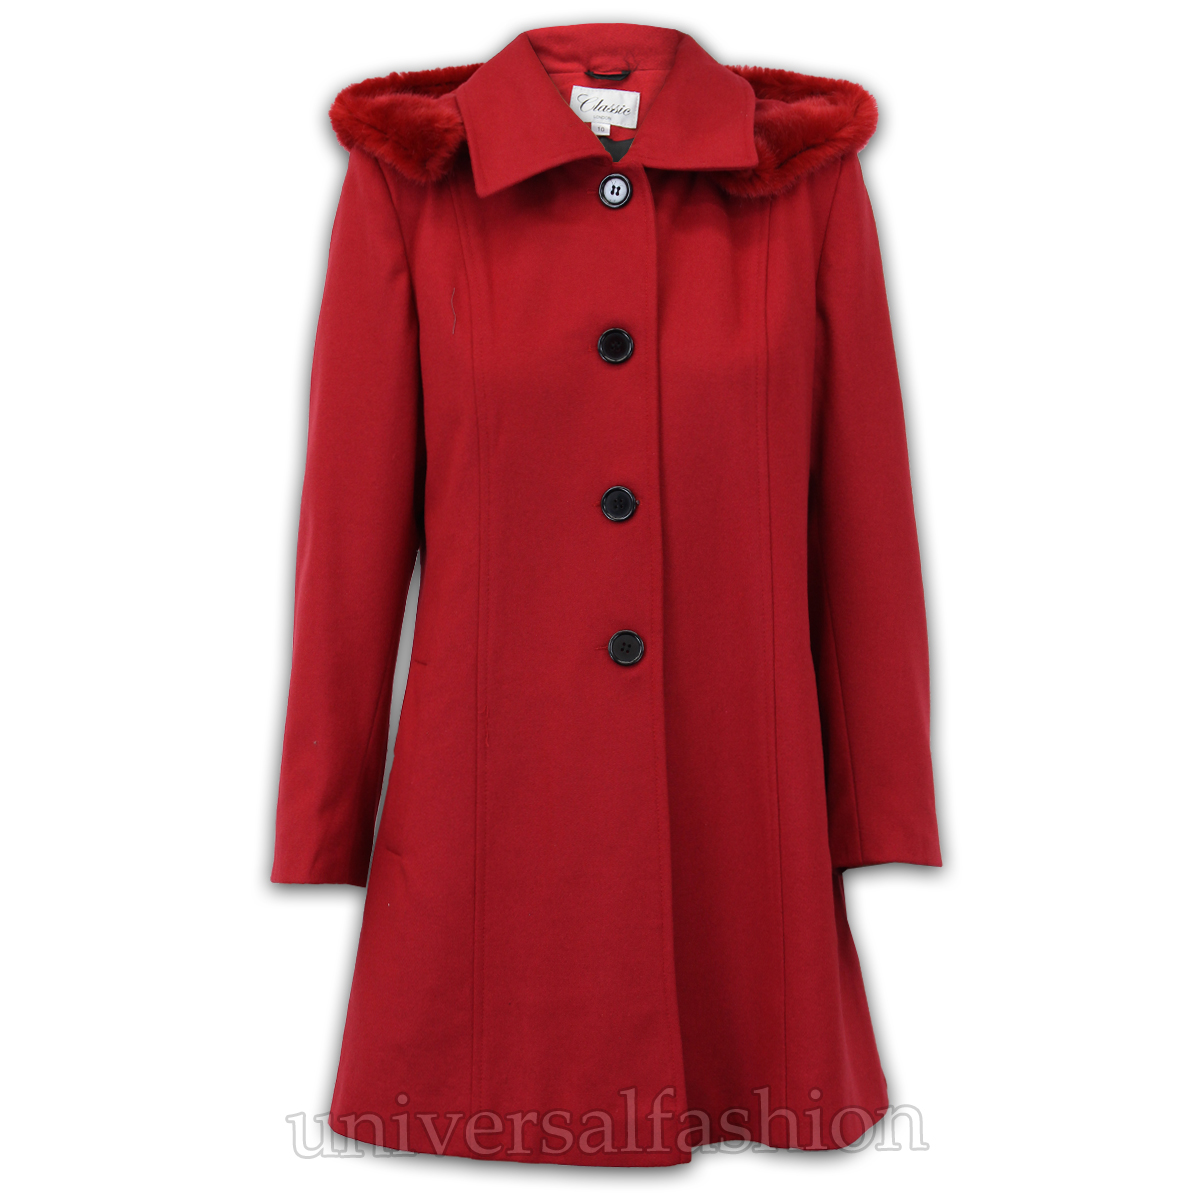 Find a great selection of coats, jackets and blazers for women at 24software.ml Shop winter coats, peacoats, raincoats, as well as trenches & blazers from brands like Topshop, Canada Goose, The North Face & more. Free shipping & returns.